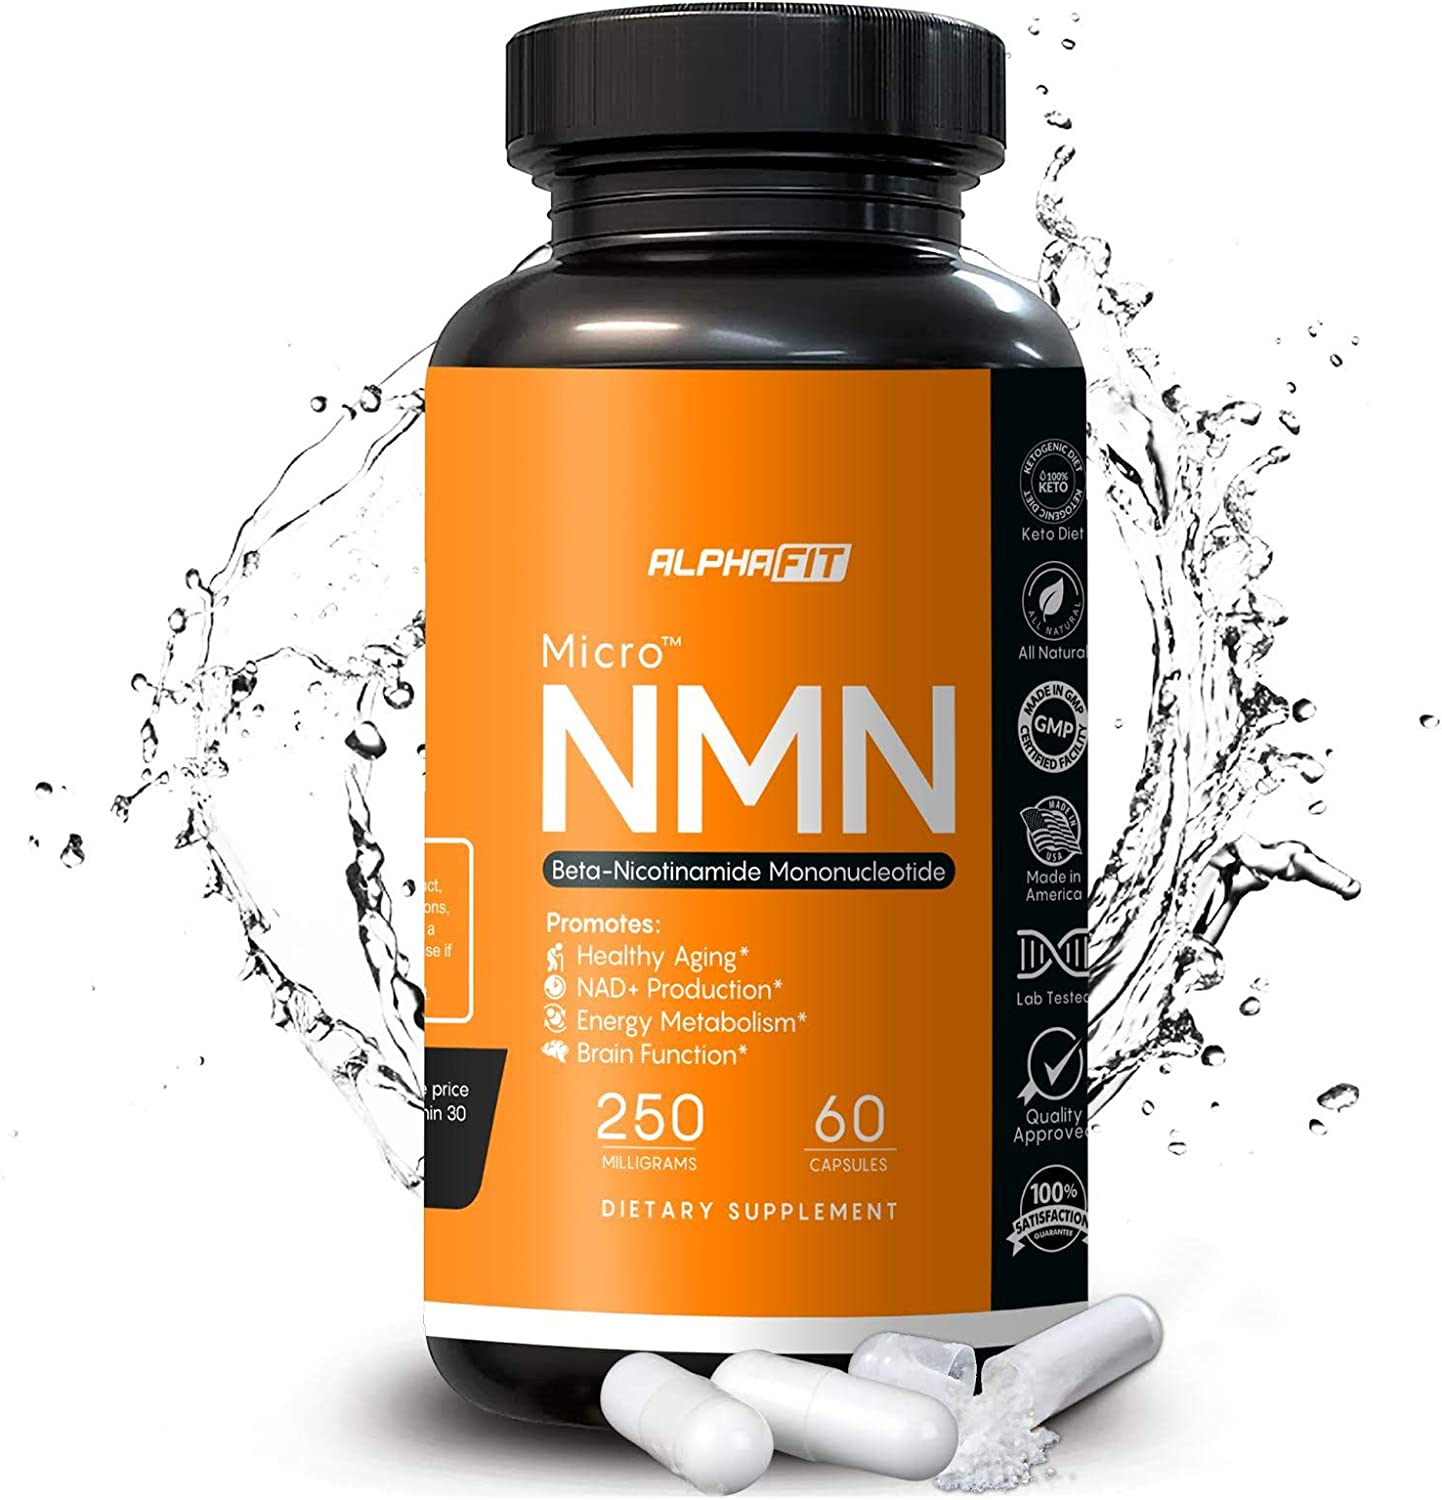 NMN Supplements - NMN Nicotinamide Mononucleotide Supplement - NAD Supplement - NAD Booster Supplement - NMN Supplement NAD Plus Cell Regenerator - NMN - Anti Aging Supplement - 250mg - AlphaFit